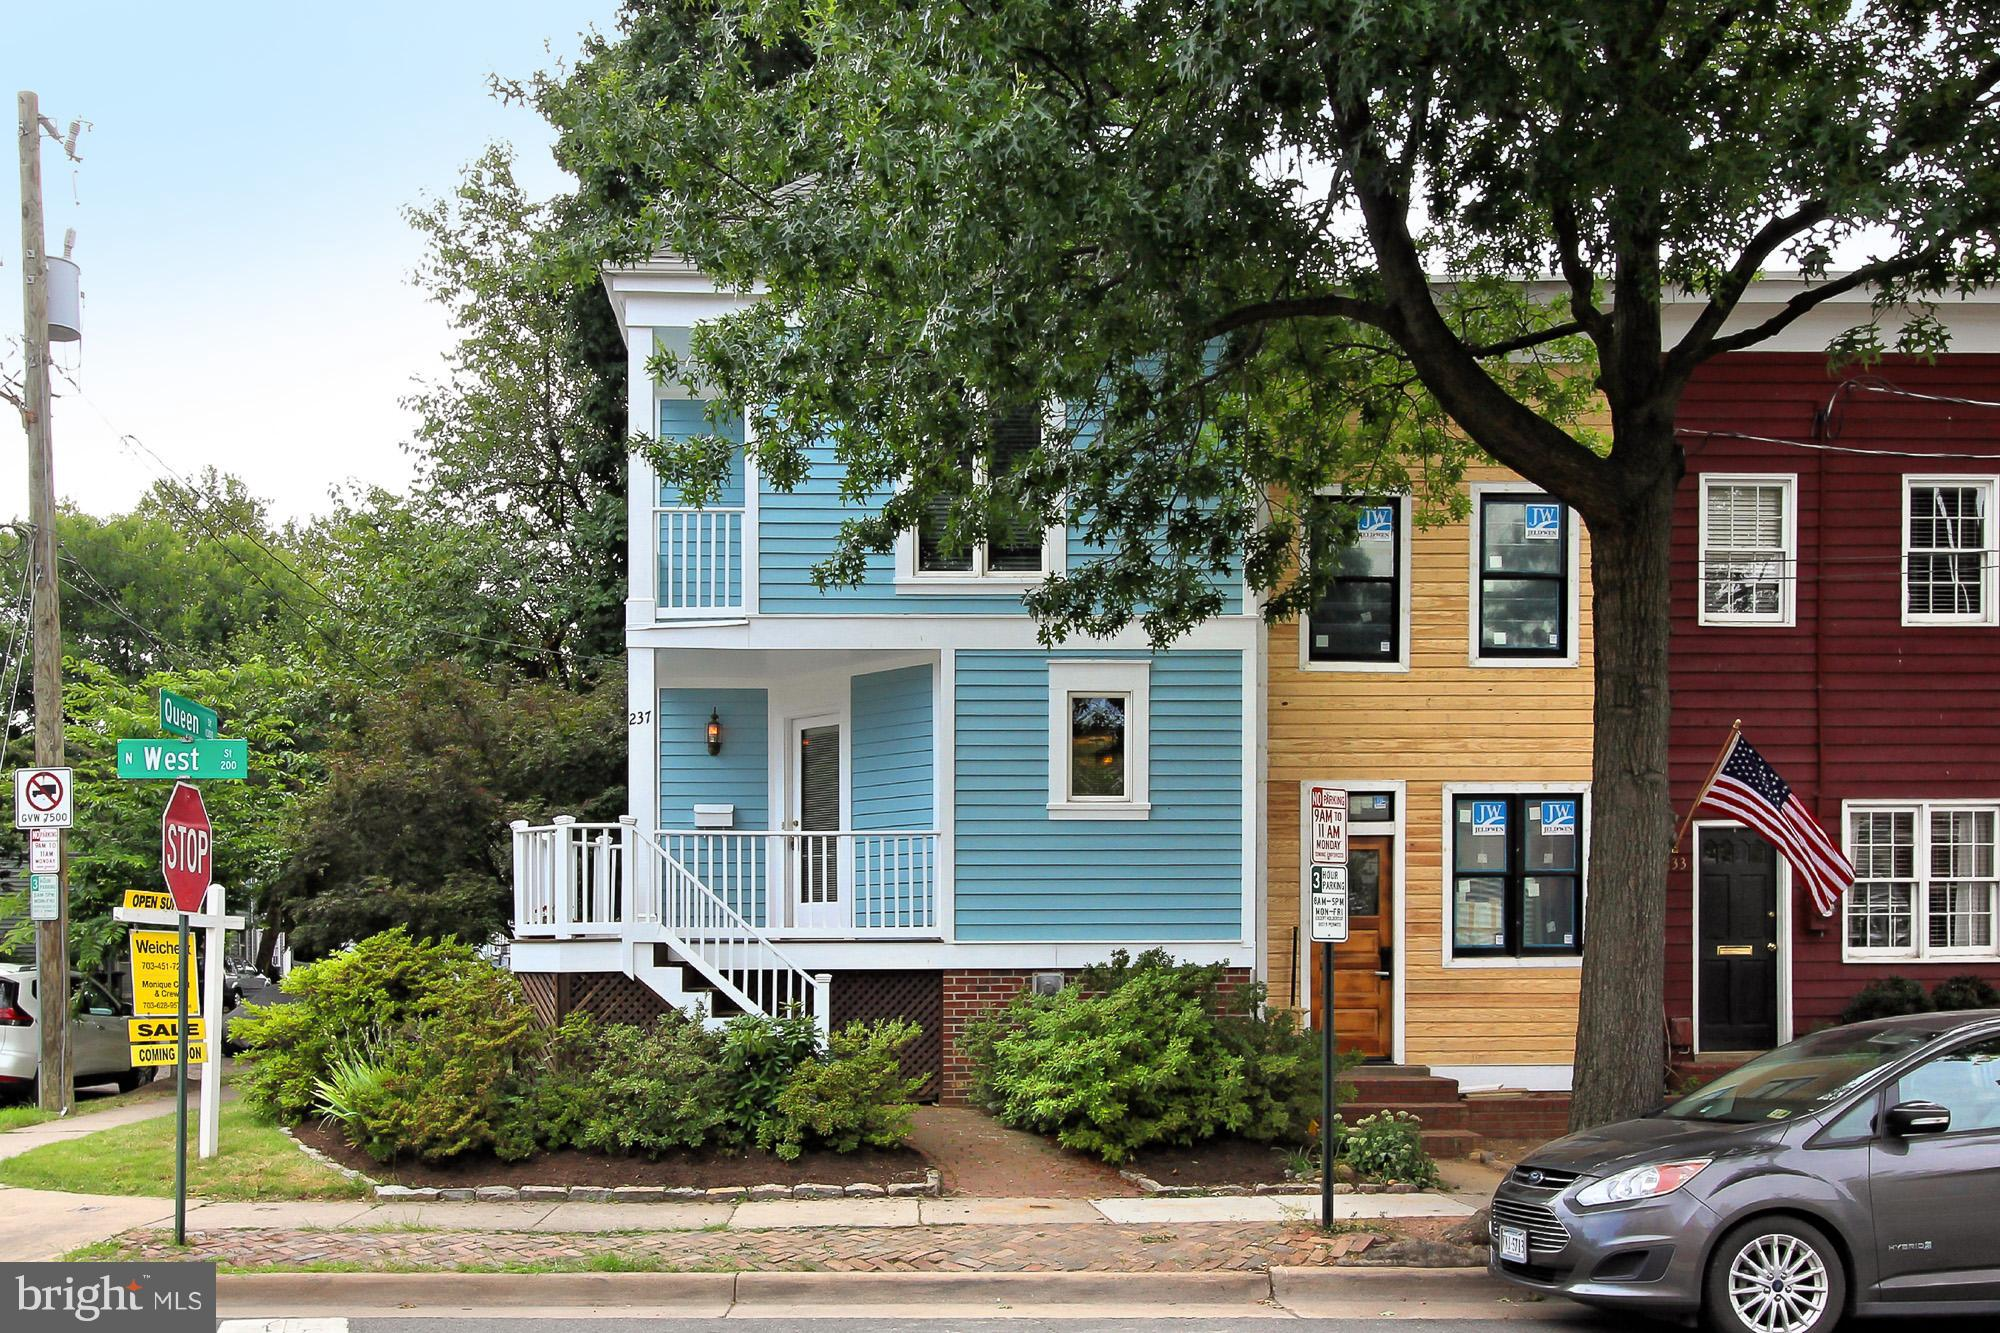 OPEN 11-2 SAT 10/20 Beaut corner home! 4 blocks to Braddock Rd & King St Metros. New roof, windows, & hardiplank all 2012. Kit w/European SS appls (2014 Fridge) & granite. 2 spacious BR w/balconies. Spiral stairs to 3rd lvl BR + roof top deck & super storage! LR has soaring ceil, cozy corner FP & French doors to charming brick patio. Gleaming hardwood flrs & fresh paint thruout. Off street parking